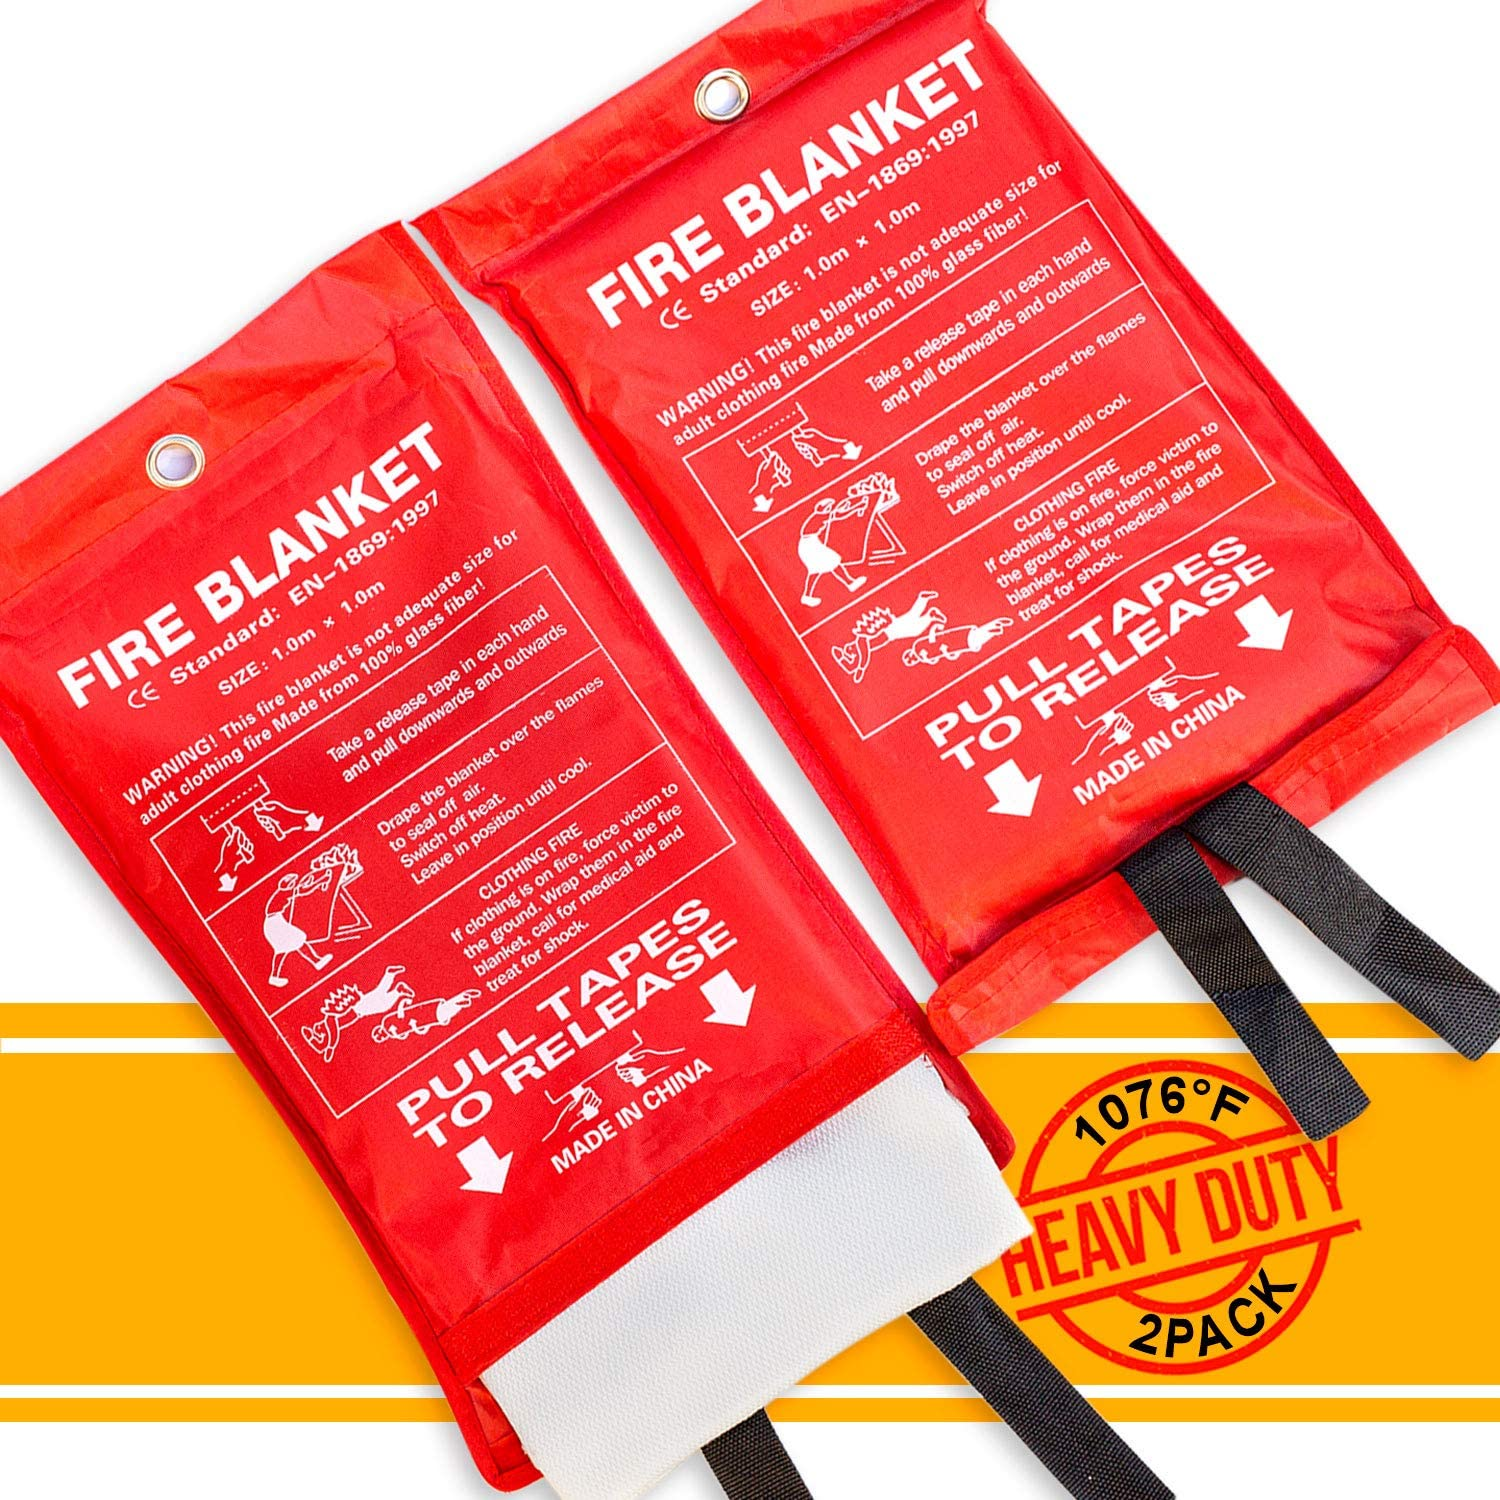 PADOMA Fire Blanket Fire Suppression Blanket (2 PACK) Heavy Duty Fiberglass Cloth, Emergency Fire Safety Blanket Reusable For People, Designed For Kitchen, Fireplace, Grill, Car, House, 39.3X 39.3inch